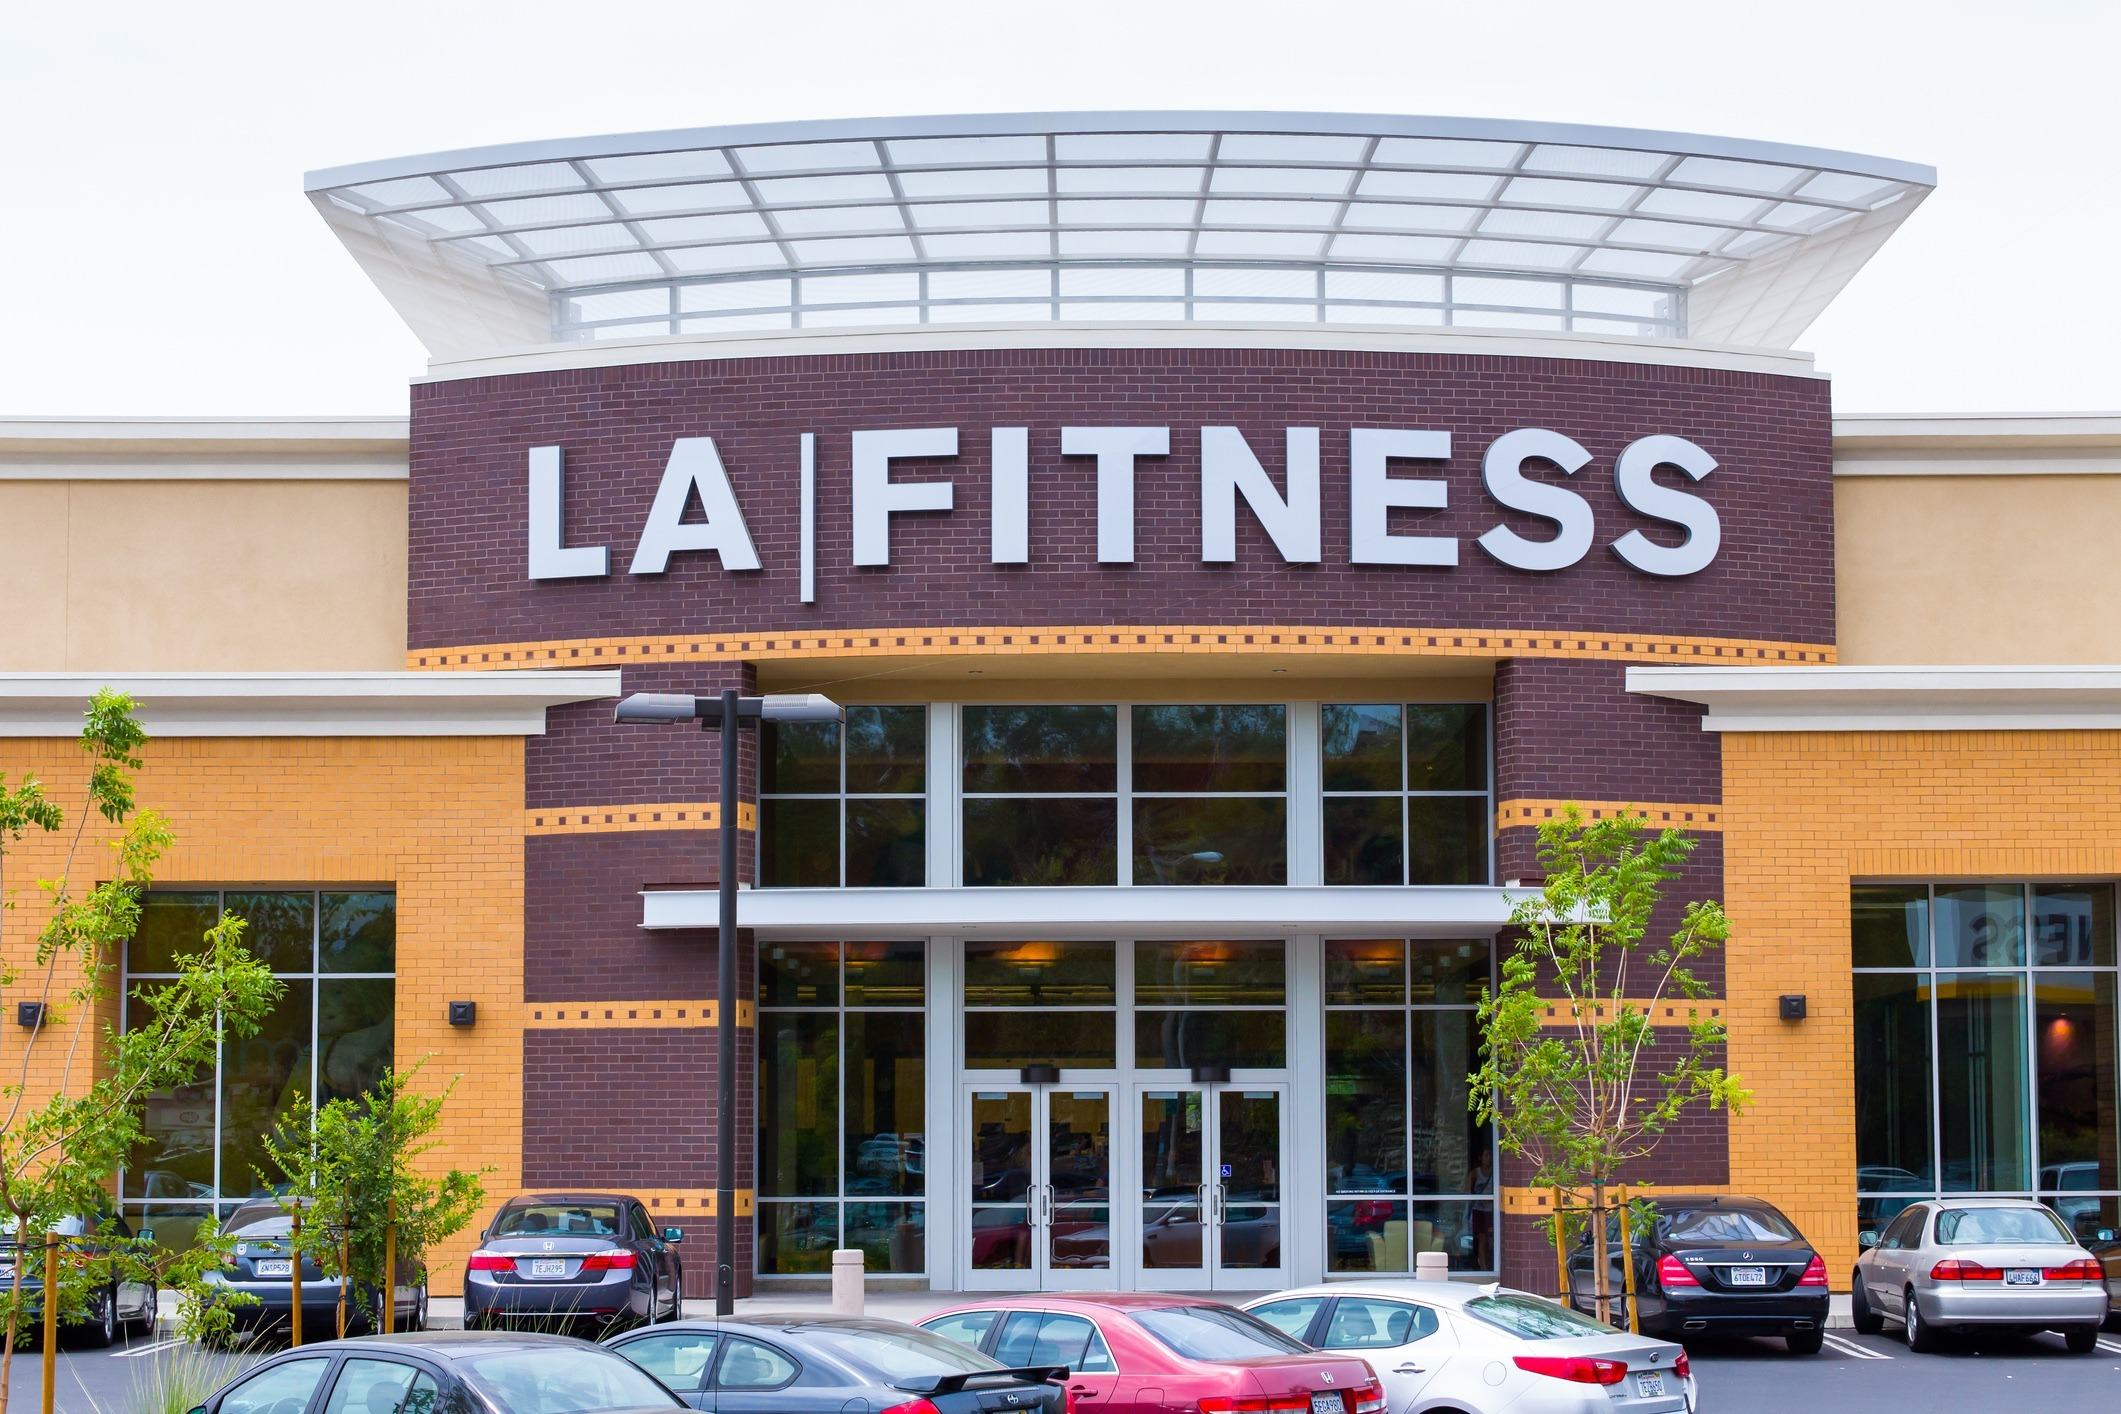 La Fitness Location Map, La Fitness Membership How Much It Costs And How To Cancel Your Membership, La Fitness Location Map